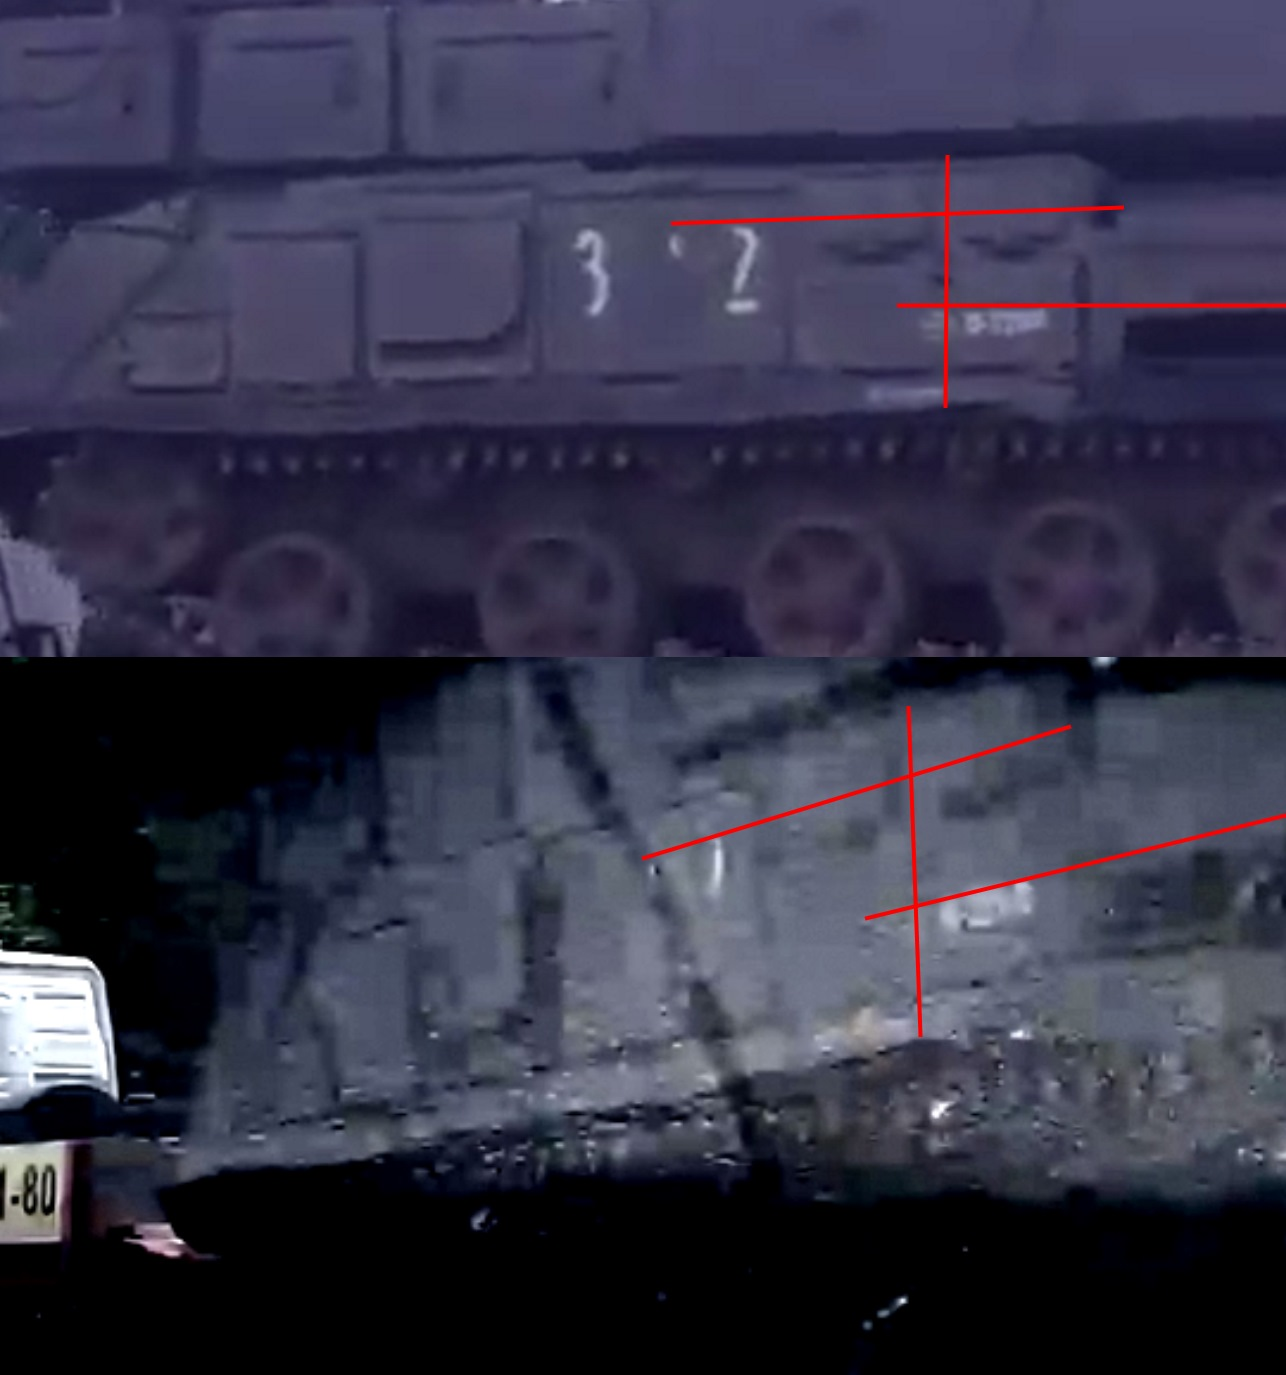 The same images as above showing where the Buk's markings line up. Note the bottom image has had its contrast adjusted for clarity.